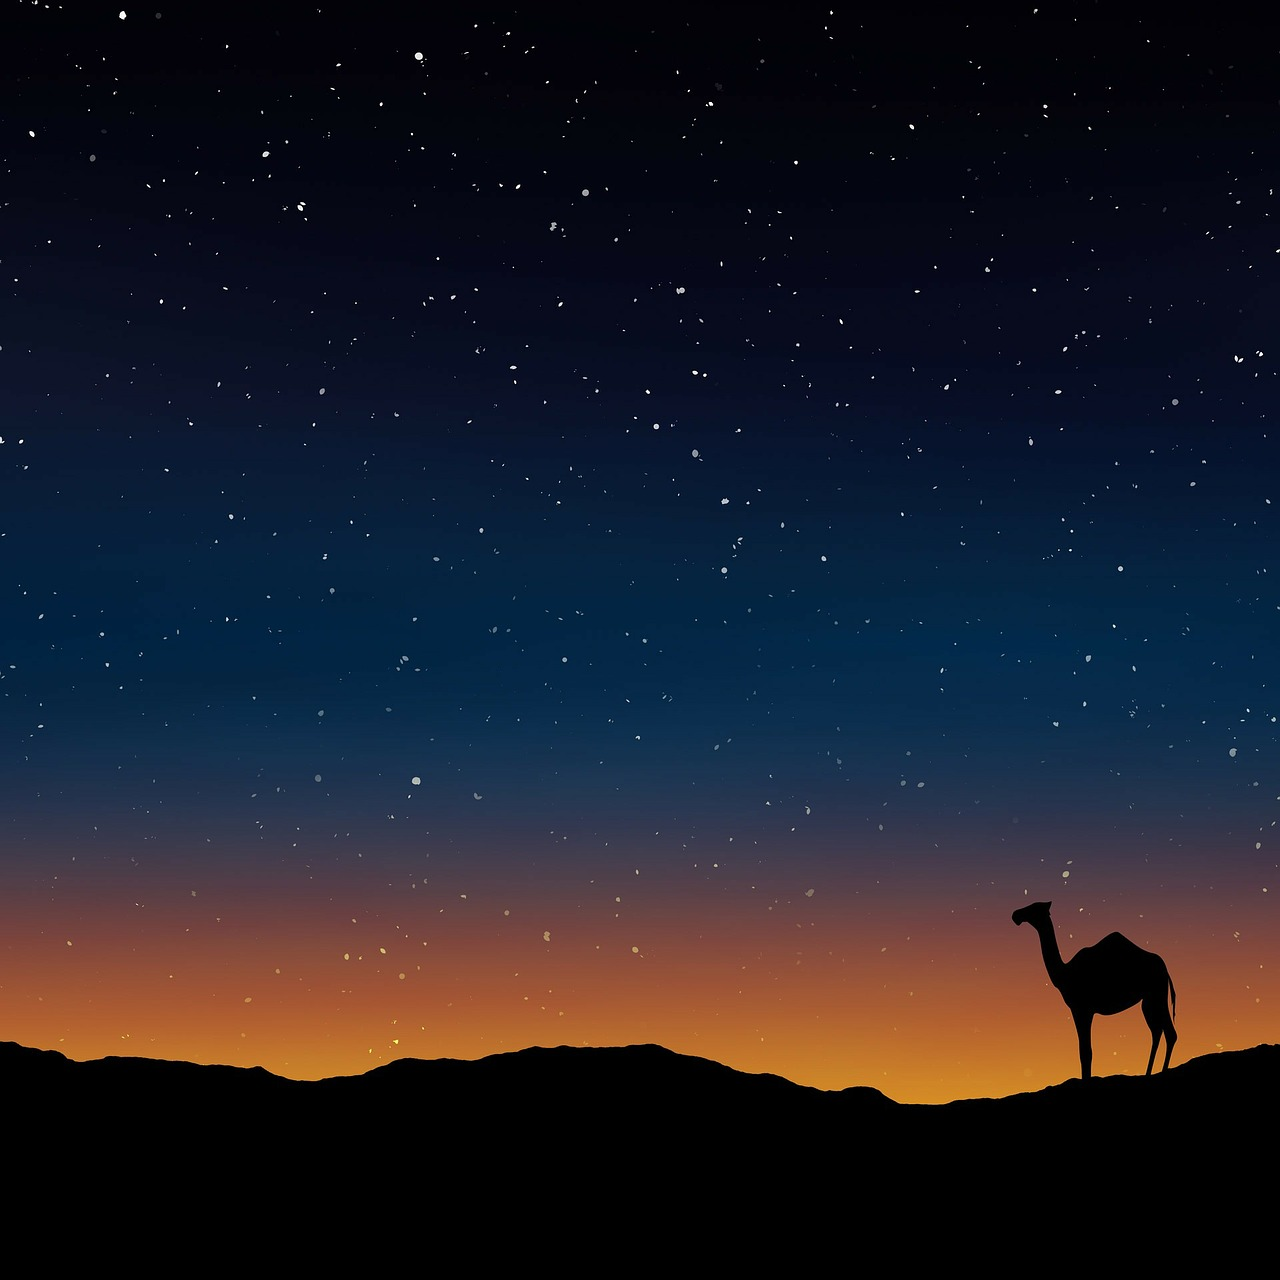 Camel in the Sahara Desert in Night with stars_PD